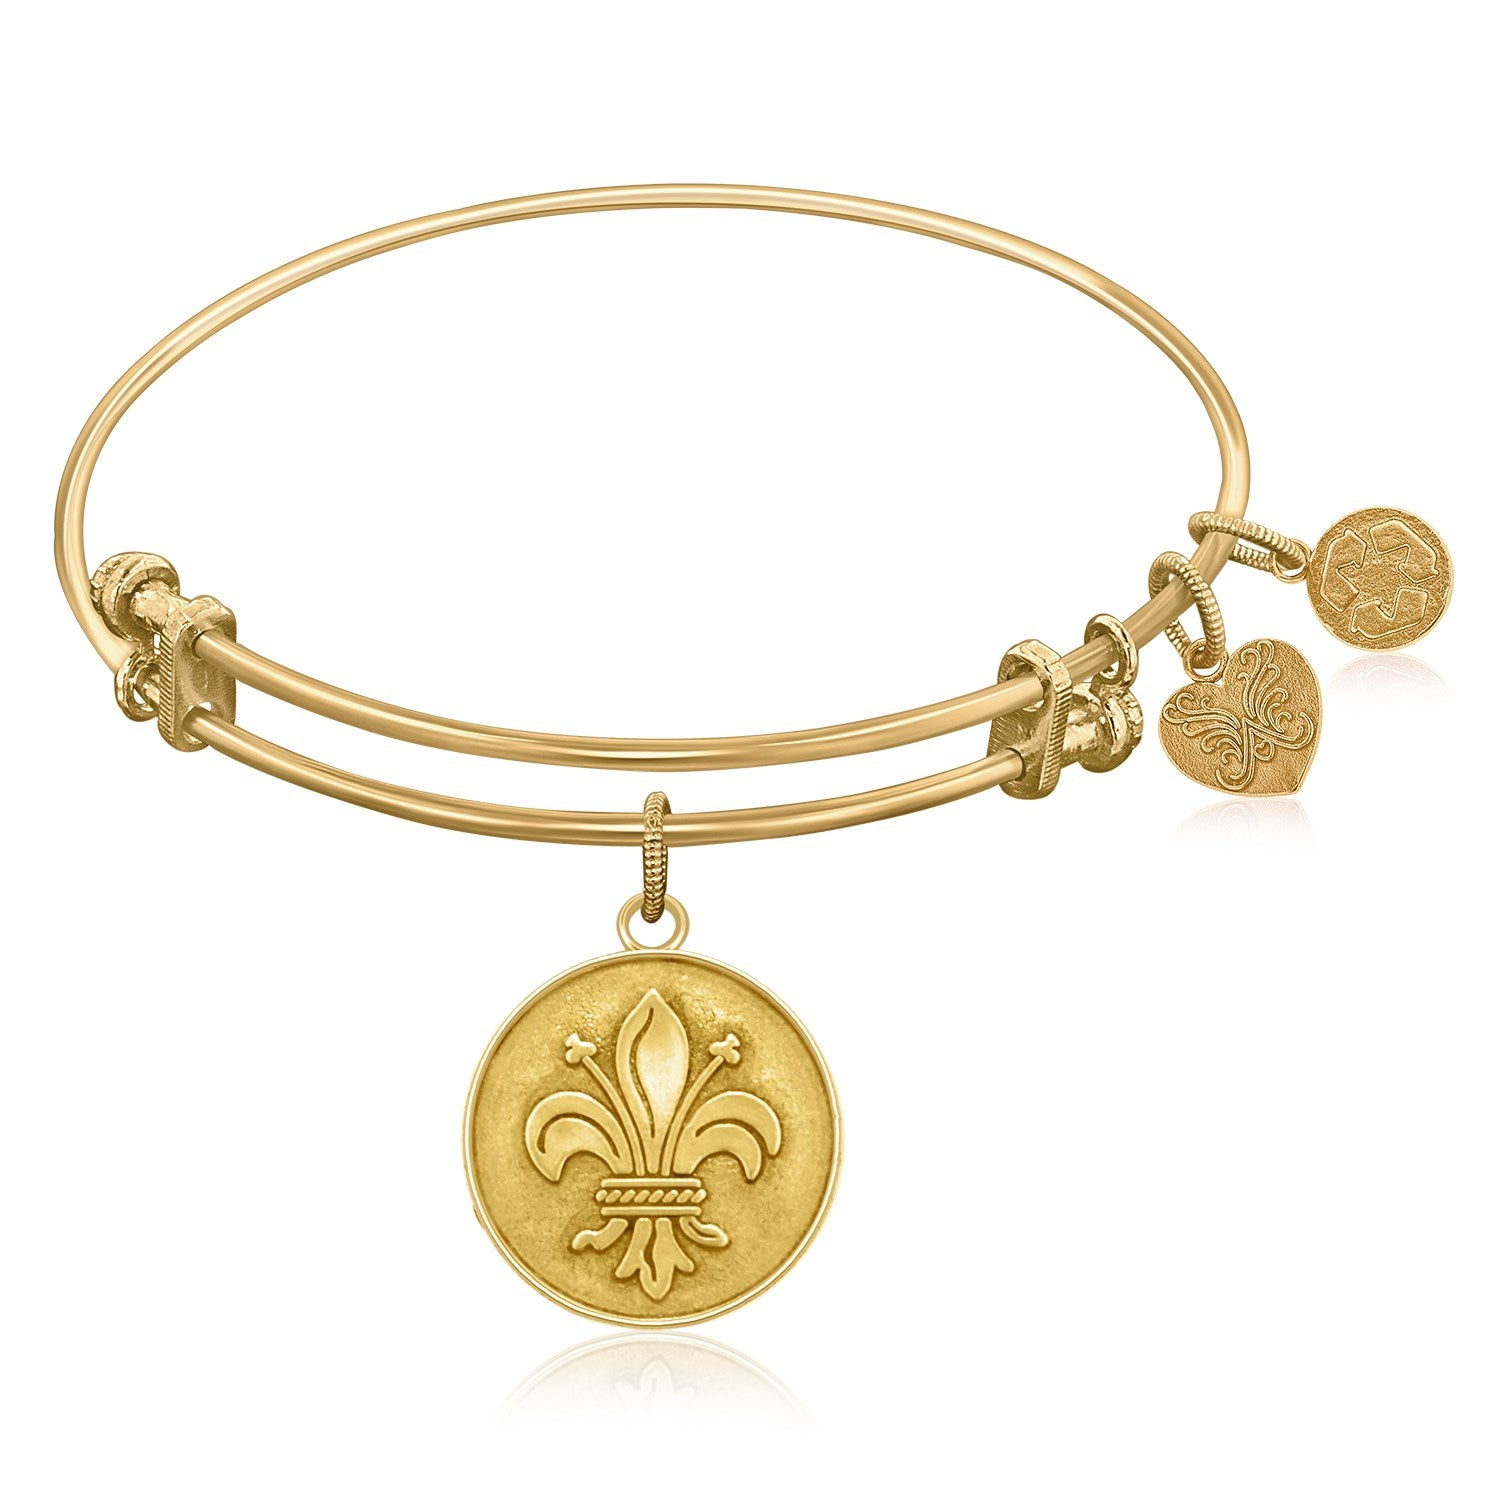 Expandable Bangle in Yellow Tone Brass with Fleur-De-Lis Symbol